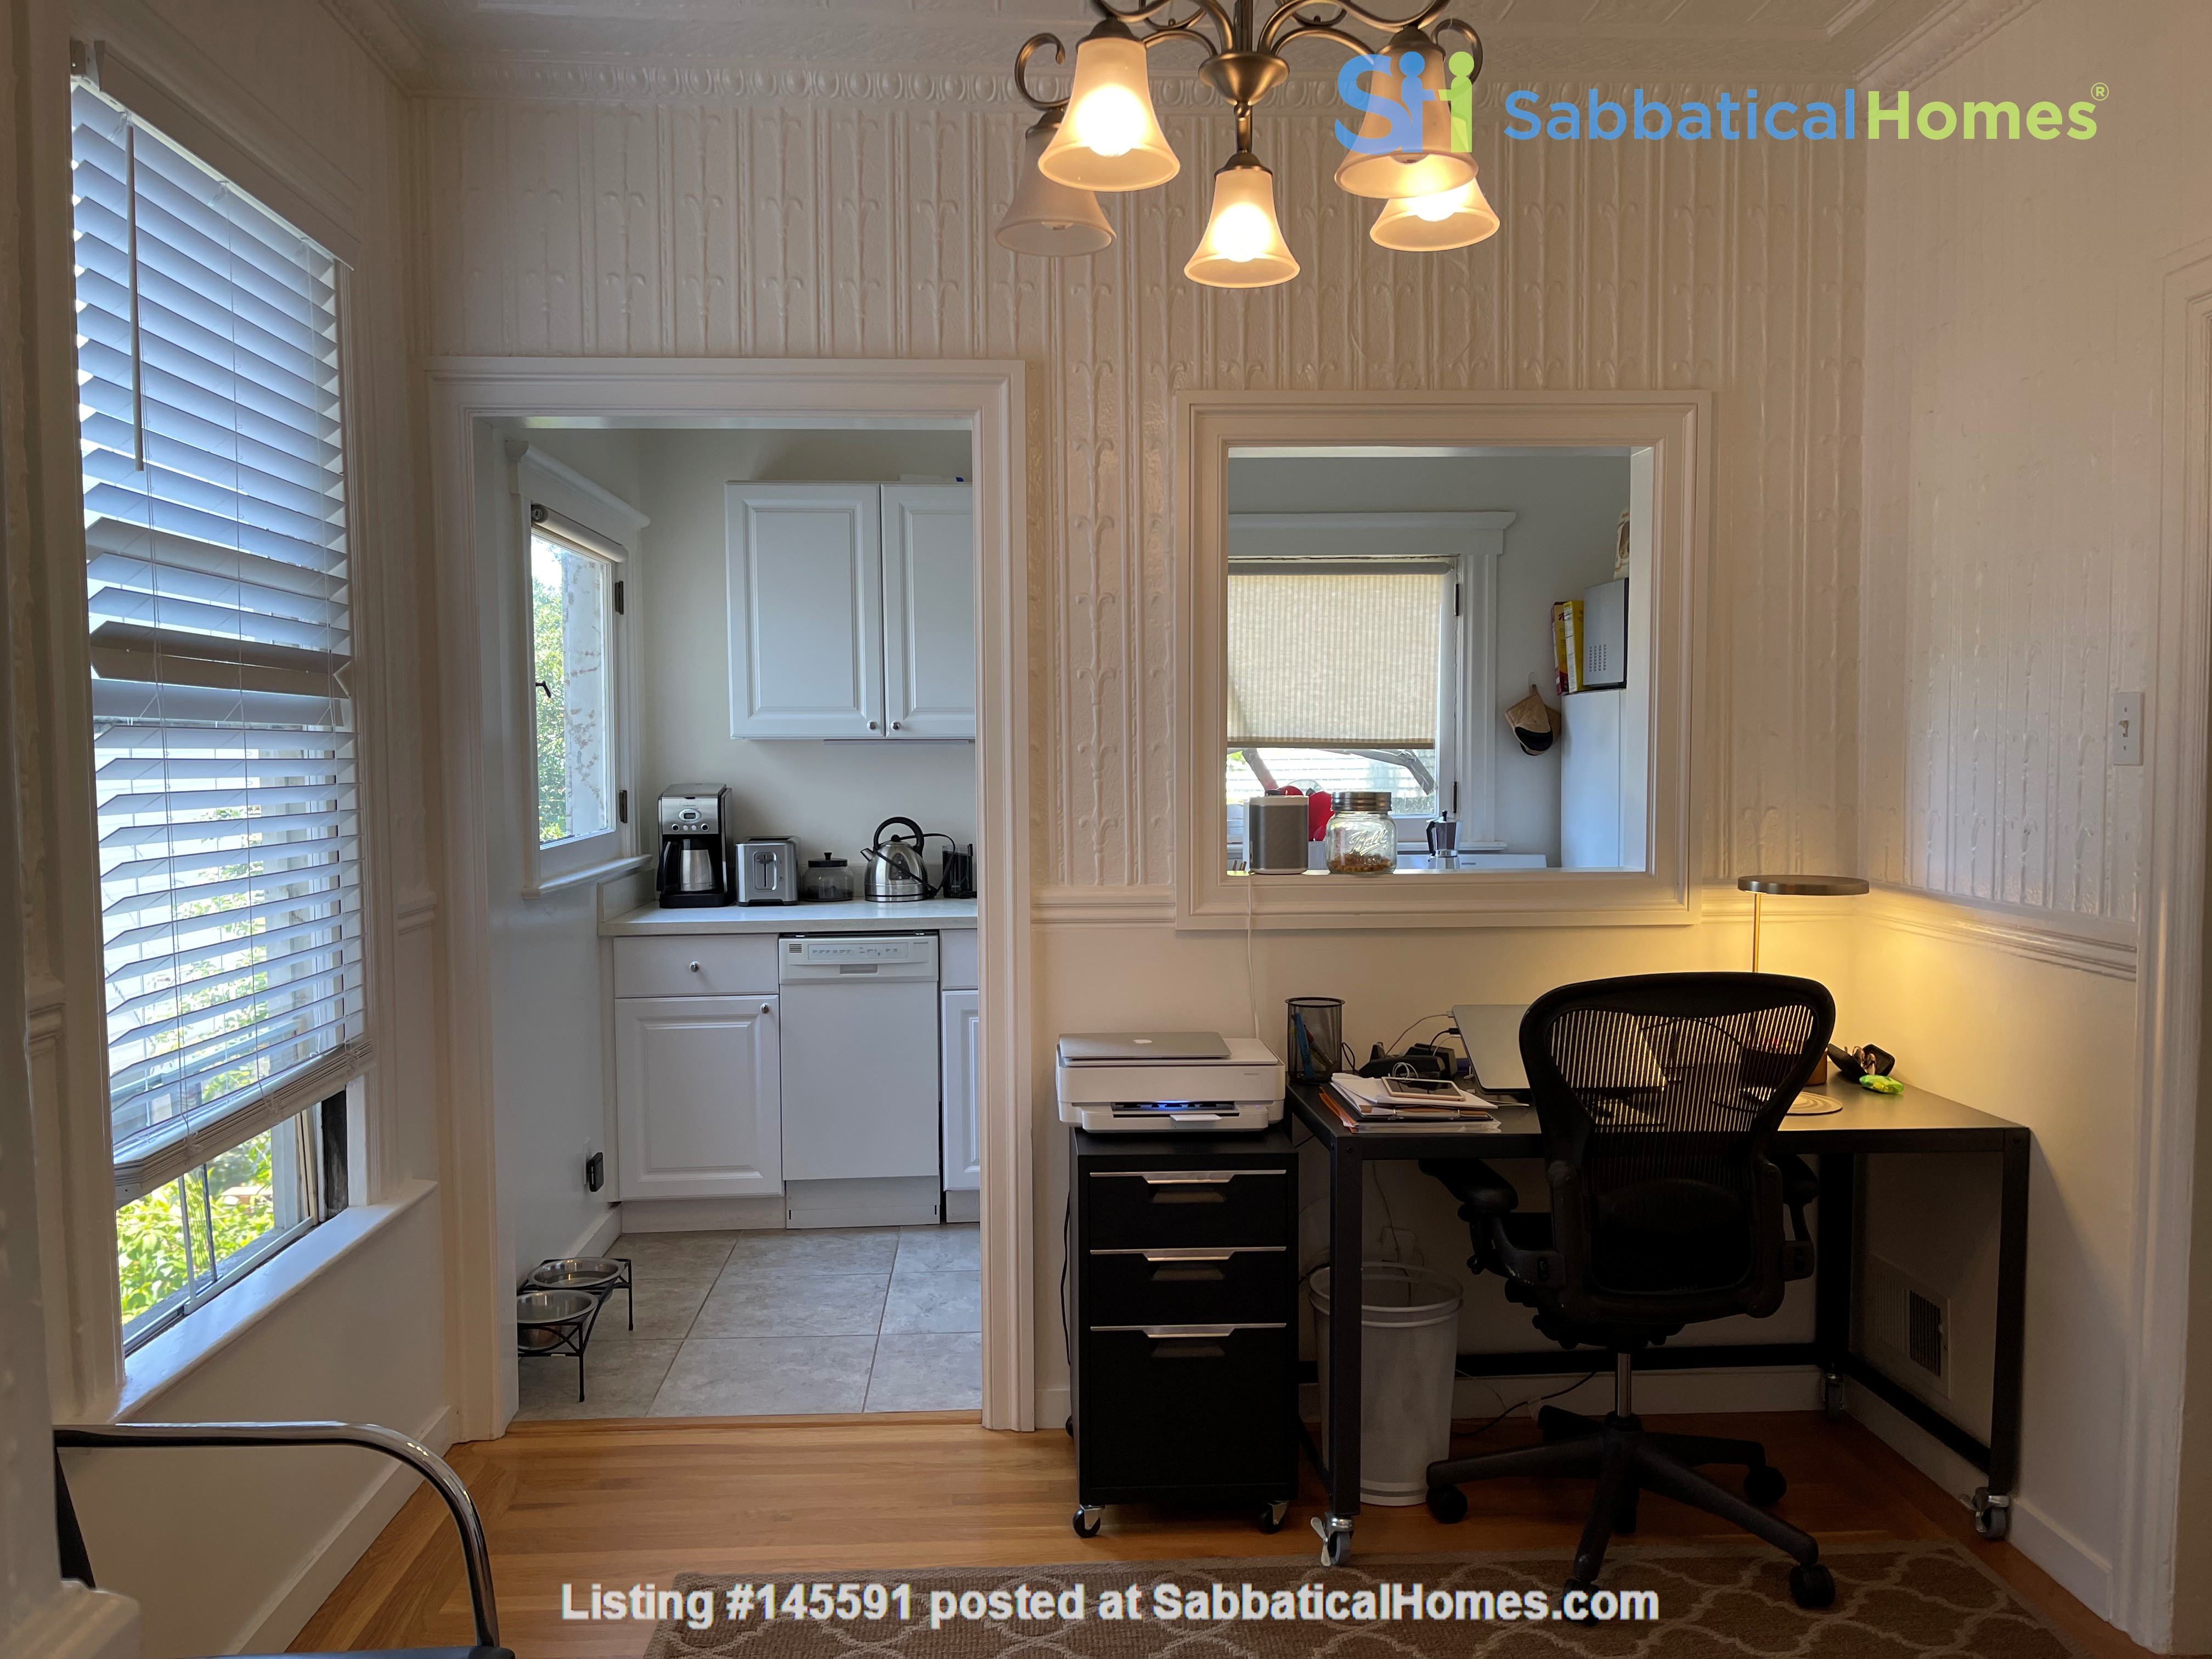 San Francisco cottage charm in a neighborhood with all the amenities Home Rental in San Francisco, California, United States 5